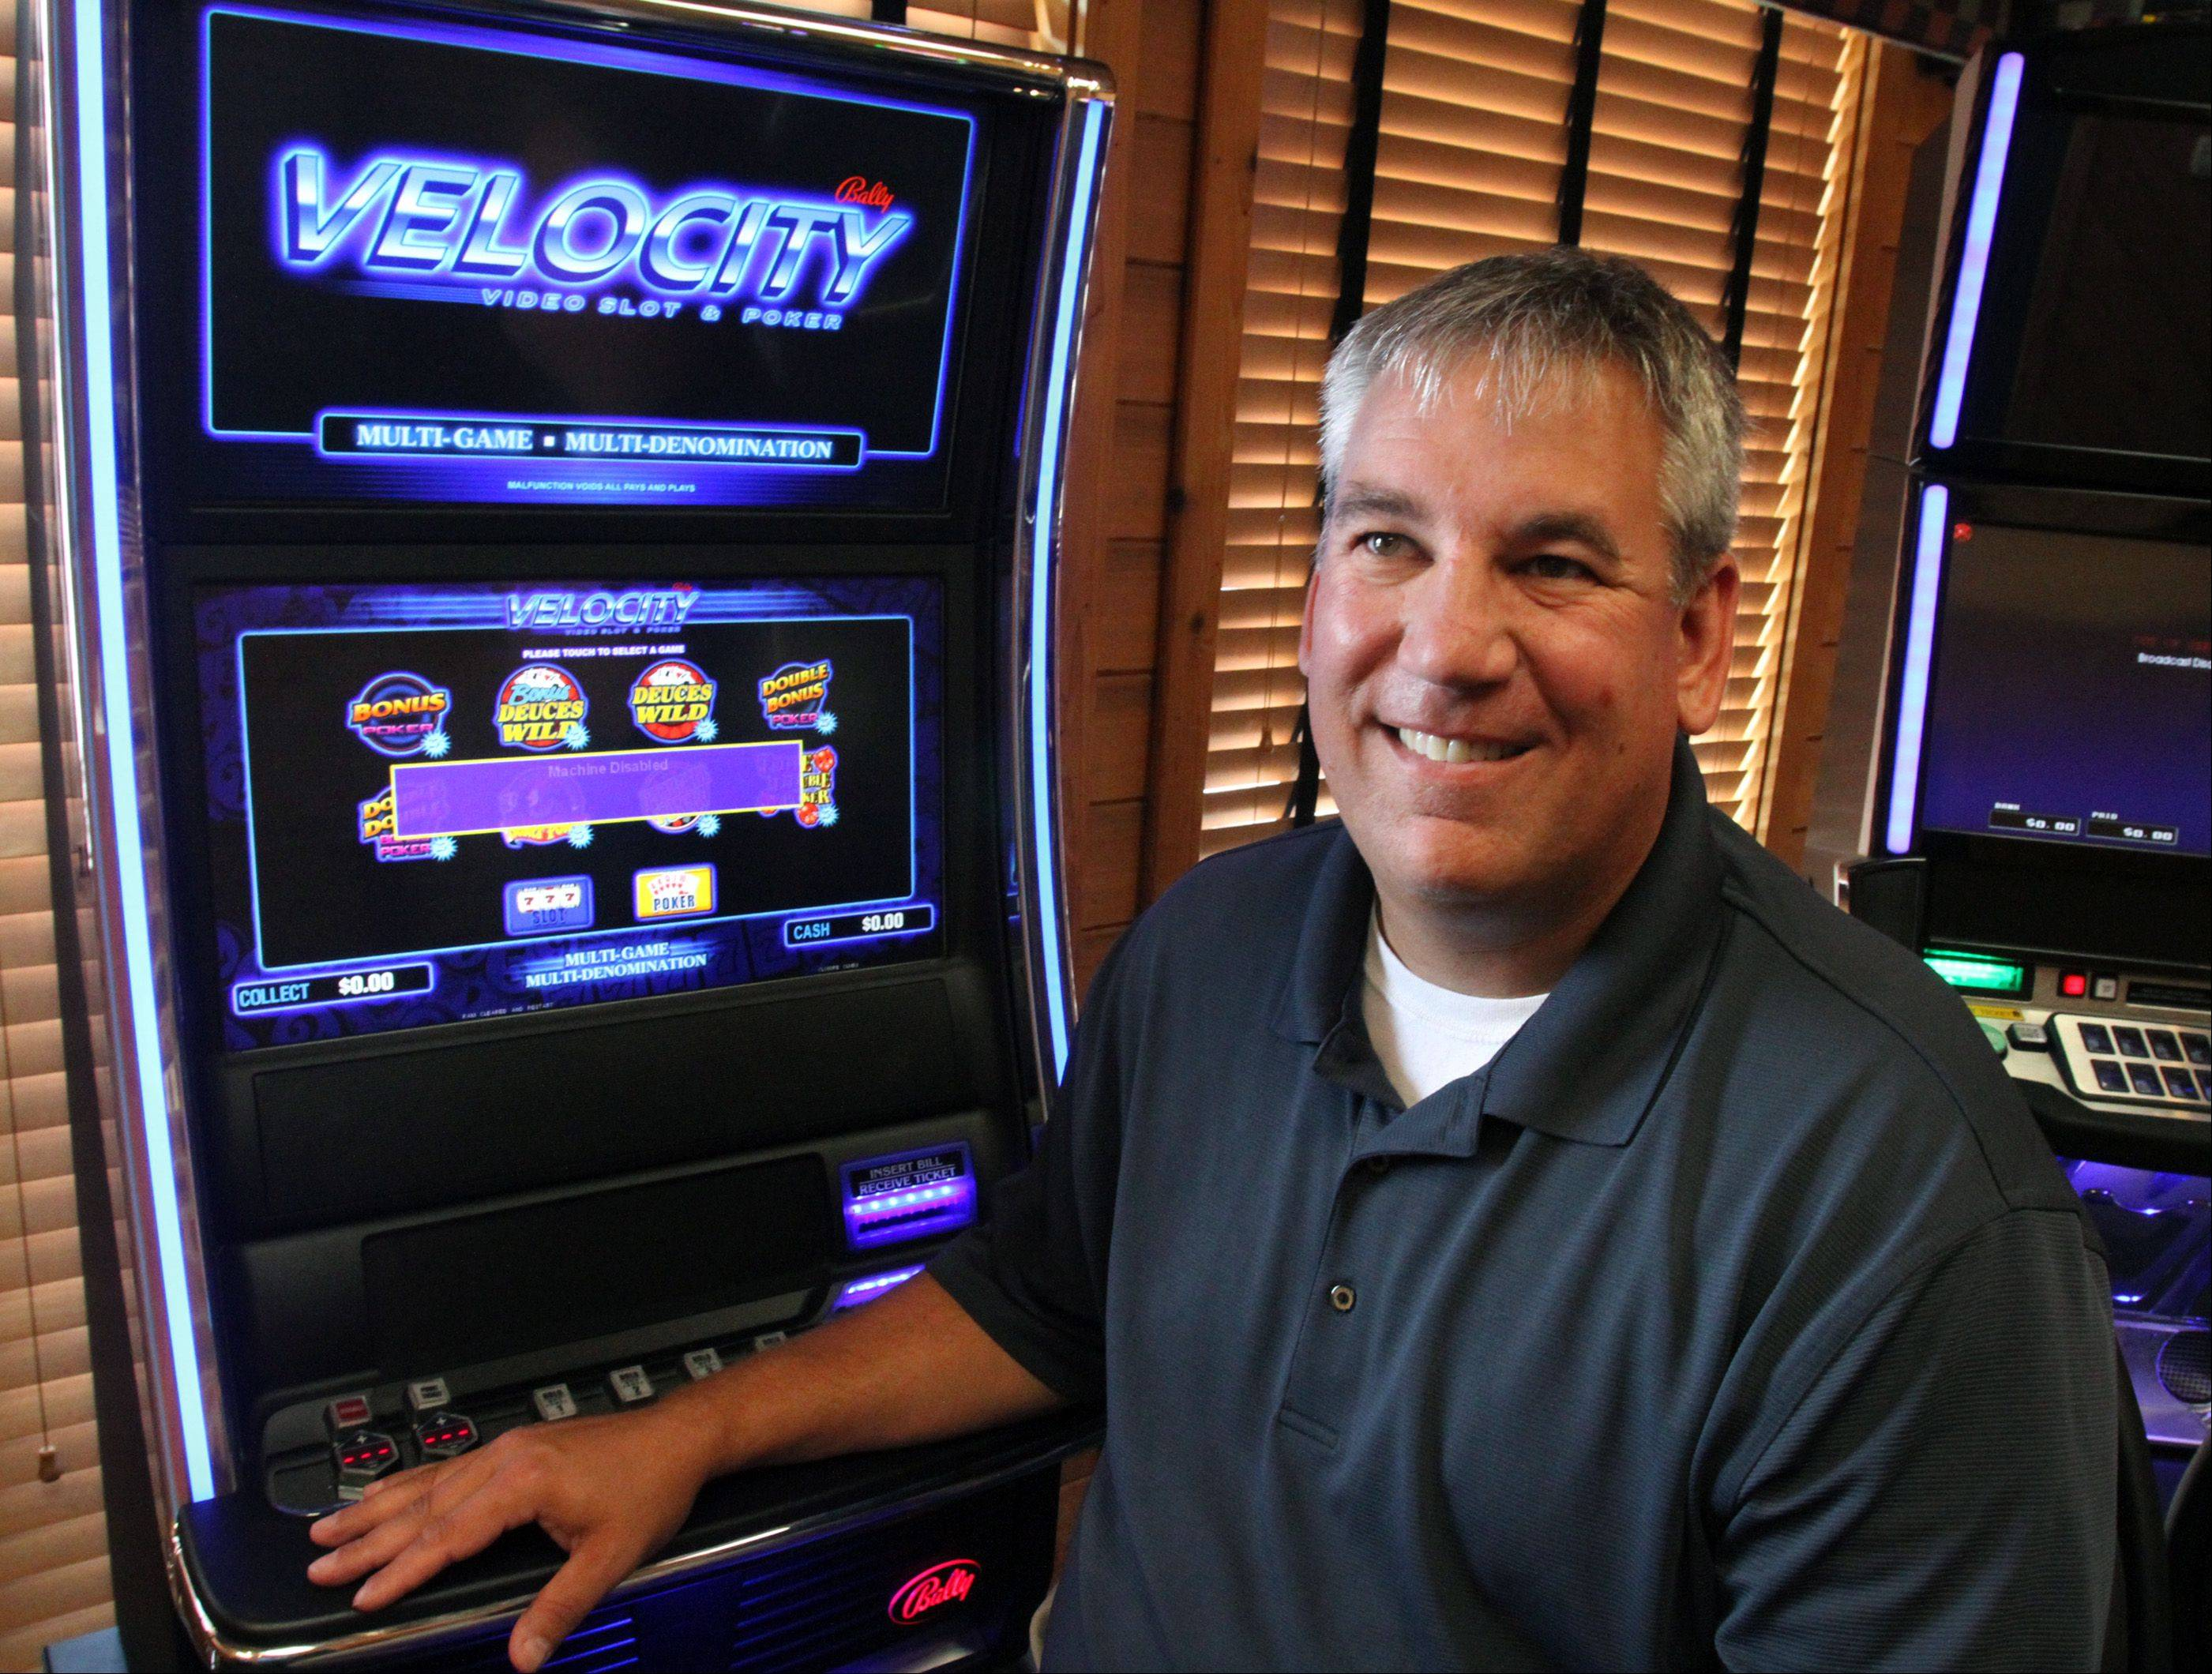 Gary Taylor, co-owner of The Assembly American Bar & Cafe in Hoffman Estates, with one of his video poker machines.